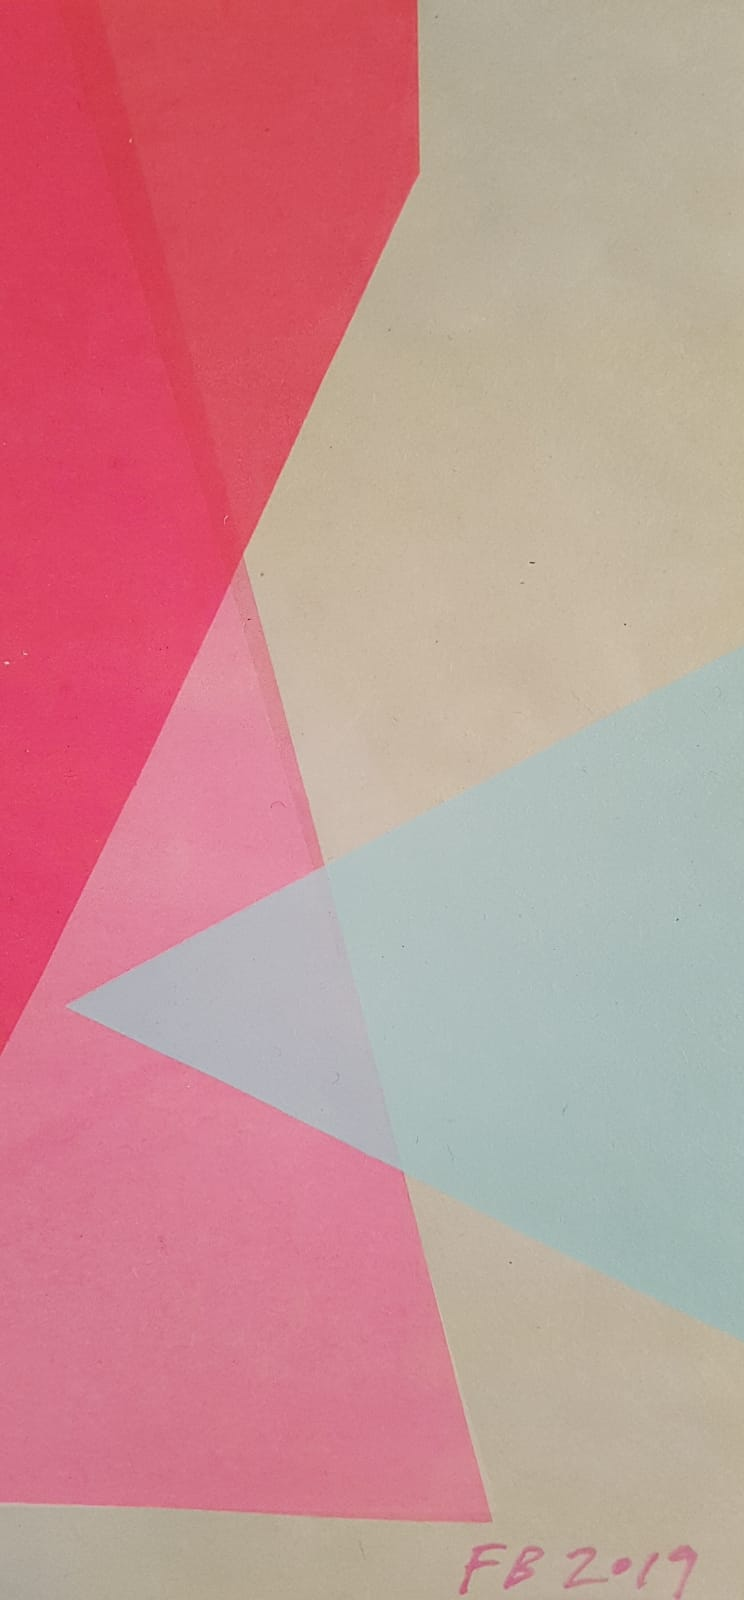 Frea Buckler-Pink Pale Blue Screen Print 20x11cm Signed